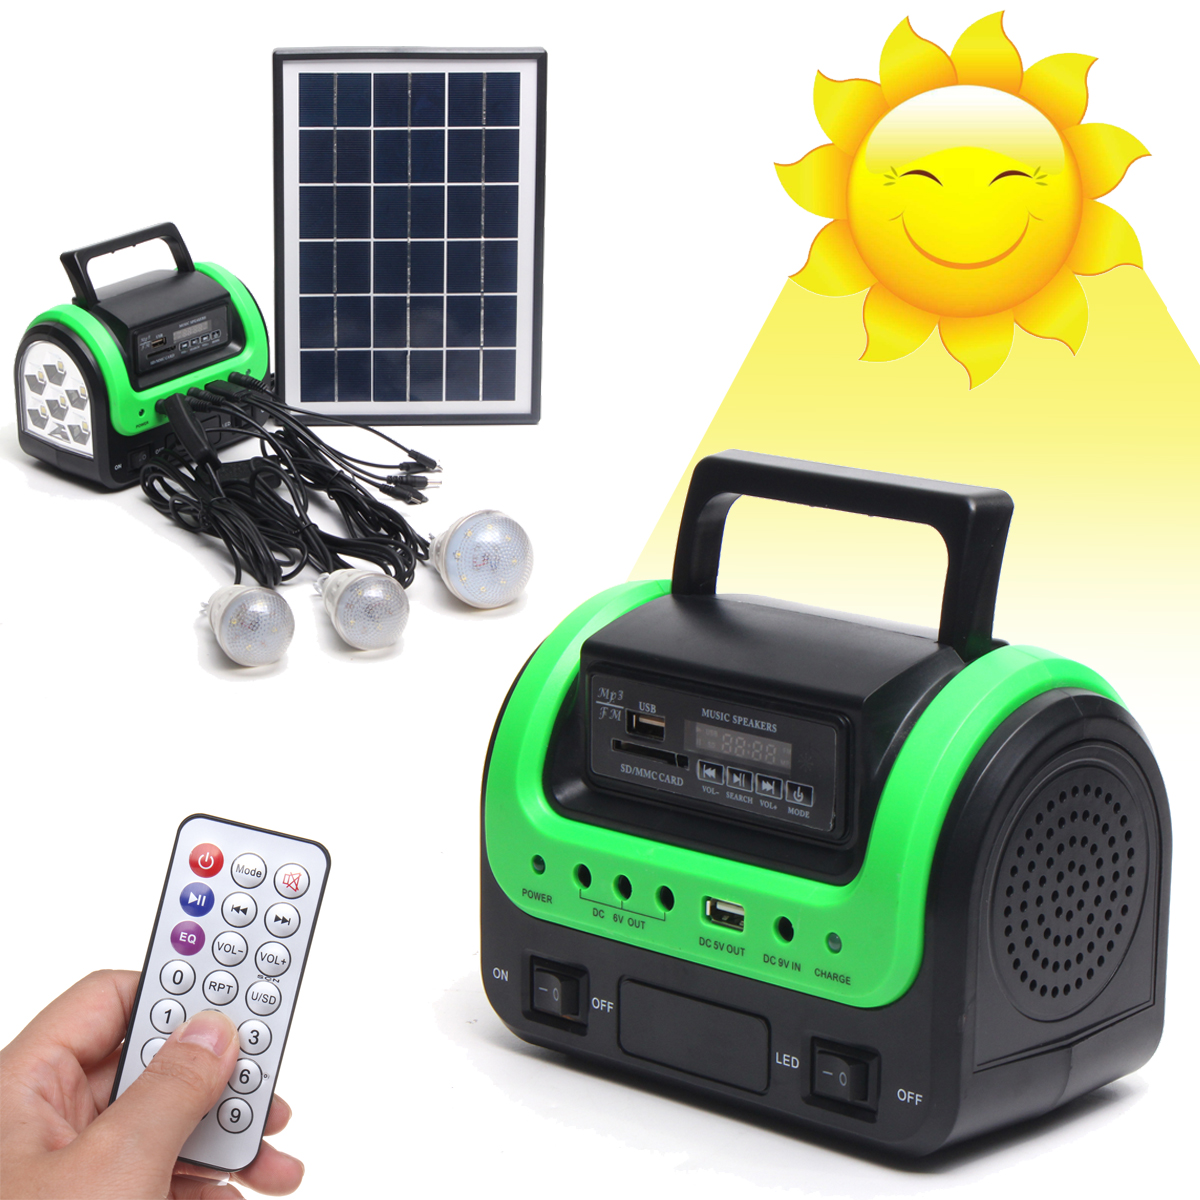 Home Outdoor Lighting Portable LED Solar Panels Charging Generator Power System Support USB Disk/SD Card/FM Function+RC solar panel power storage generator system led light usb charger portable home outdoor led lighting system support fm radio